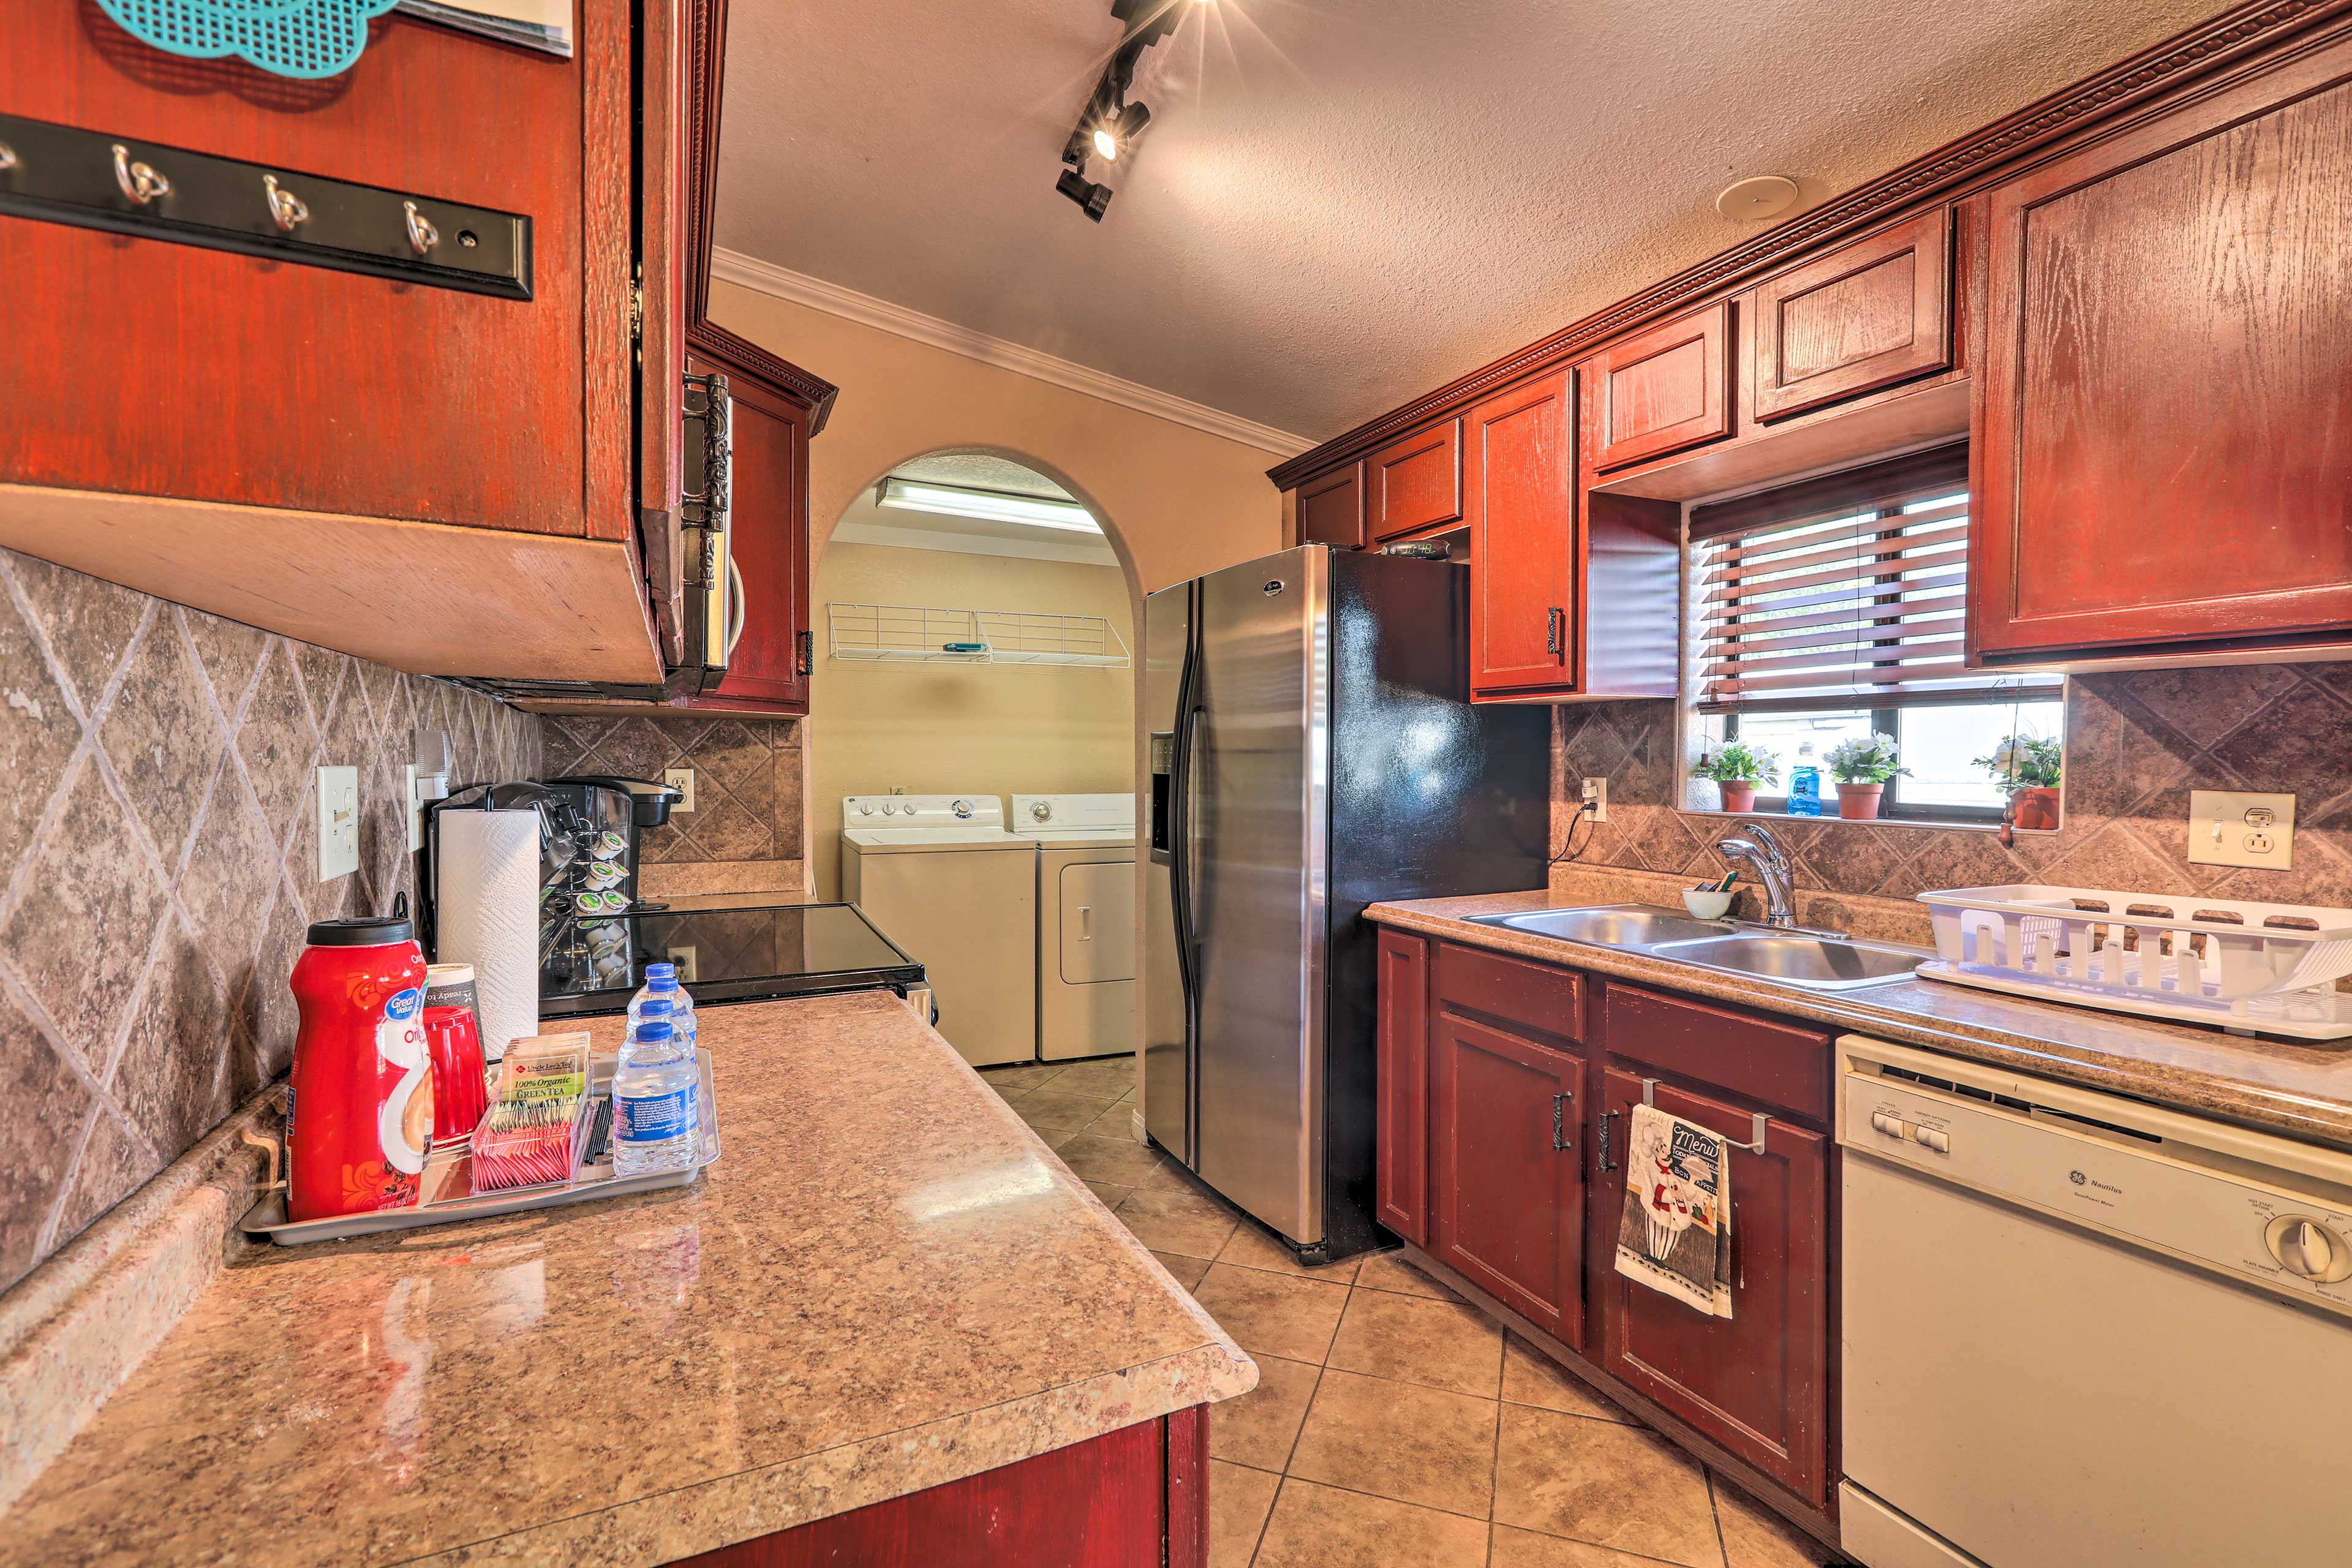 The laundry room is located at the end of the kitchen.